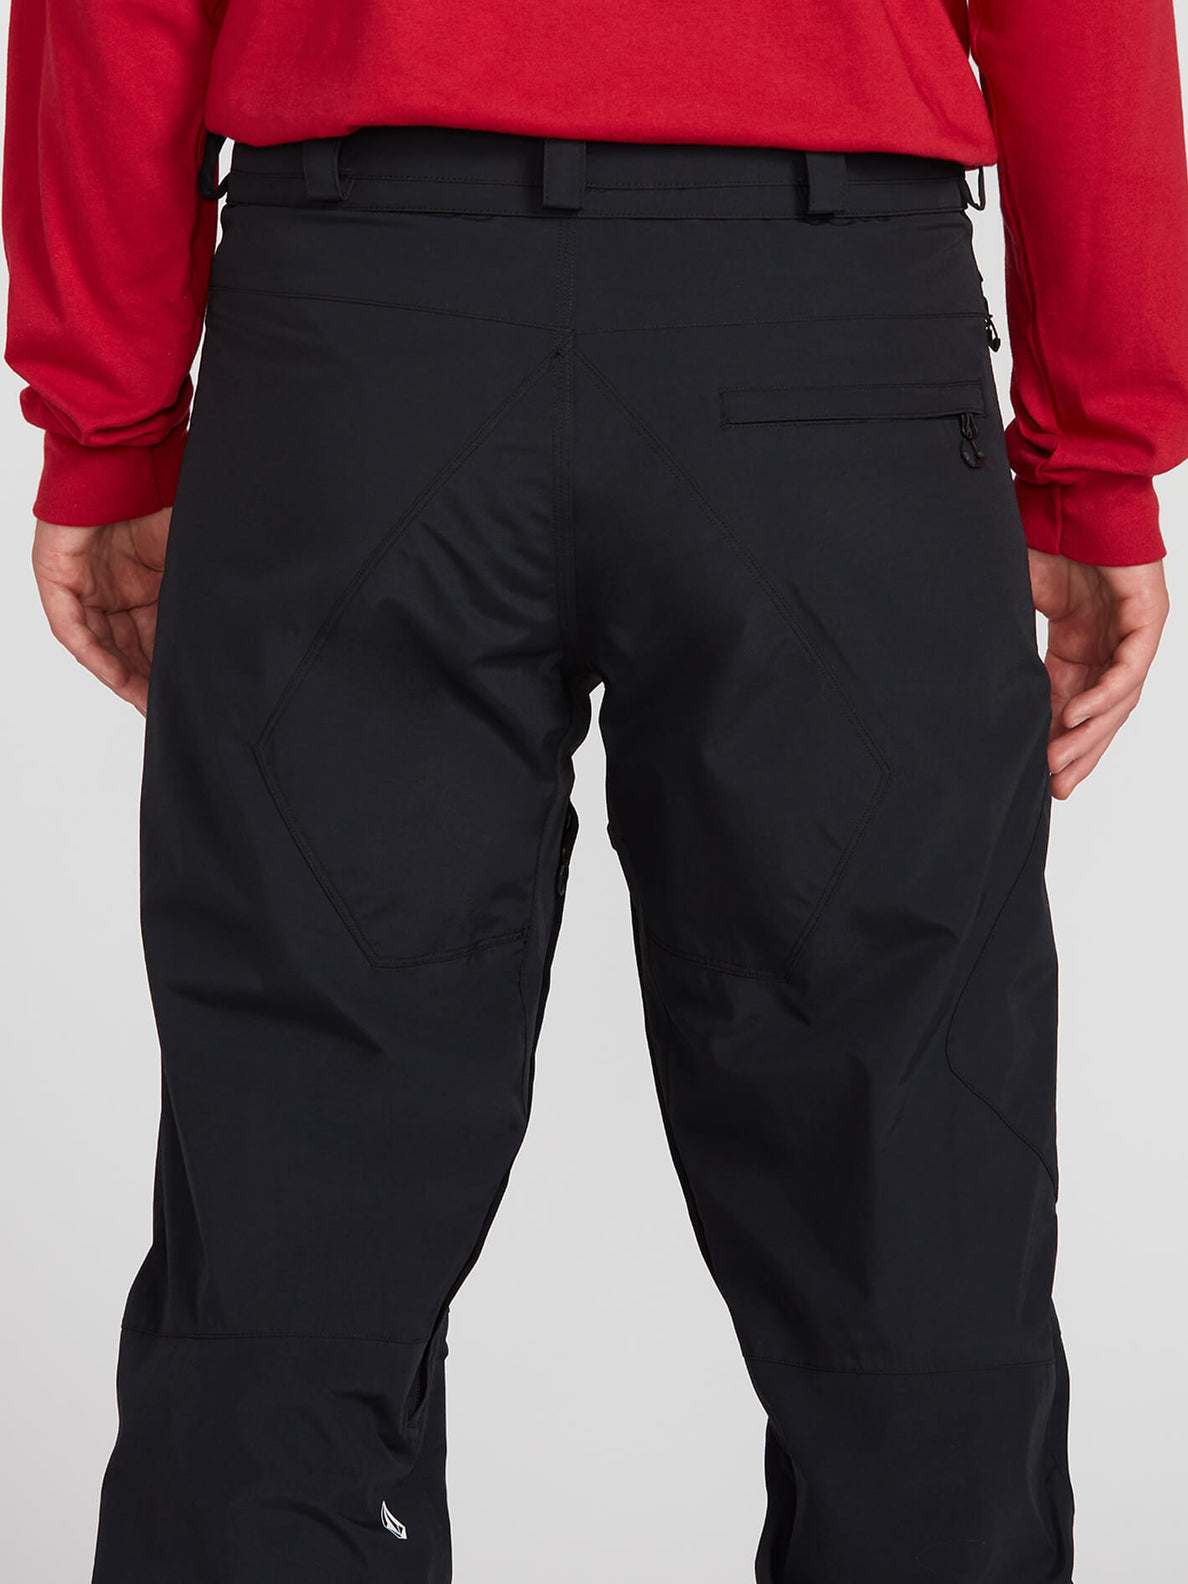 L Gore-Tex Pants - Black (G1351904_BLK) [4]